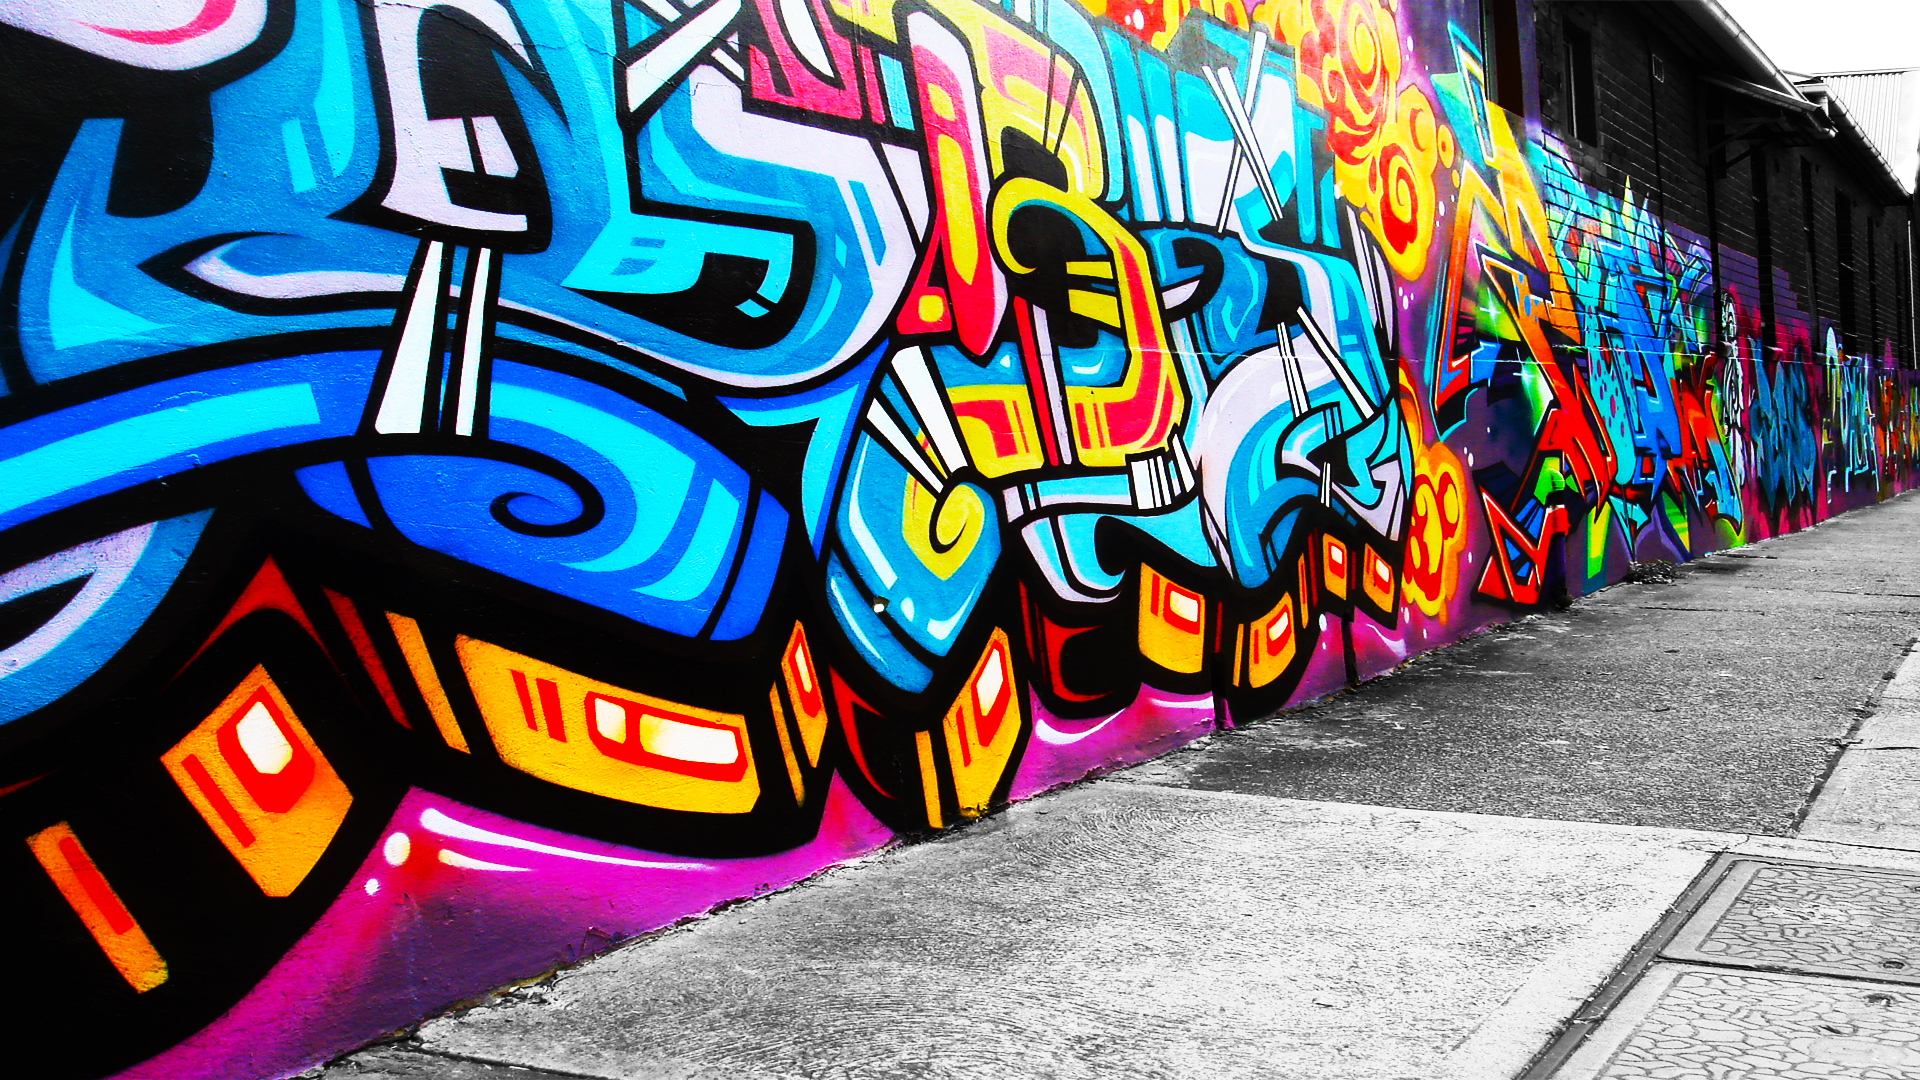 urban art graffiti paint color psychedelic wall wallpaper background 1920x1080